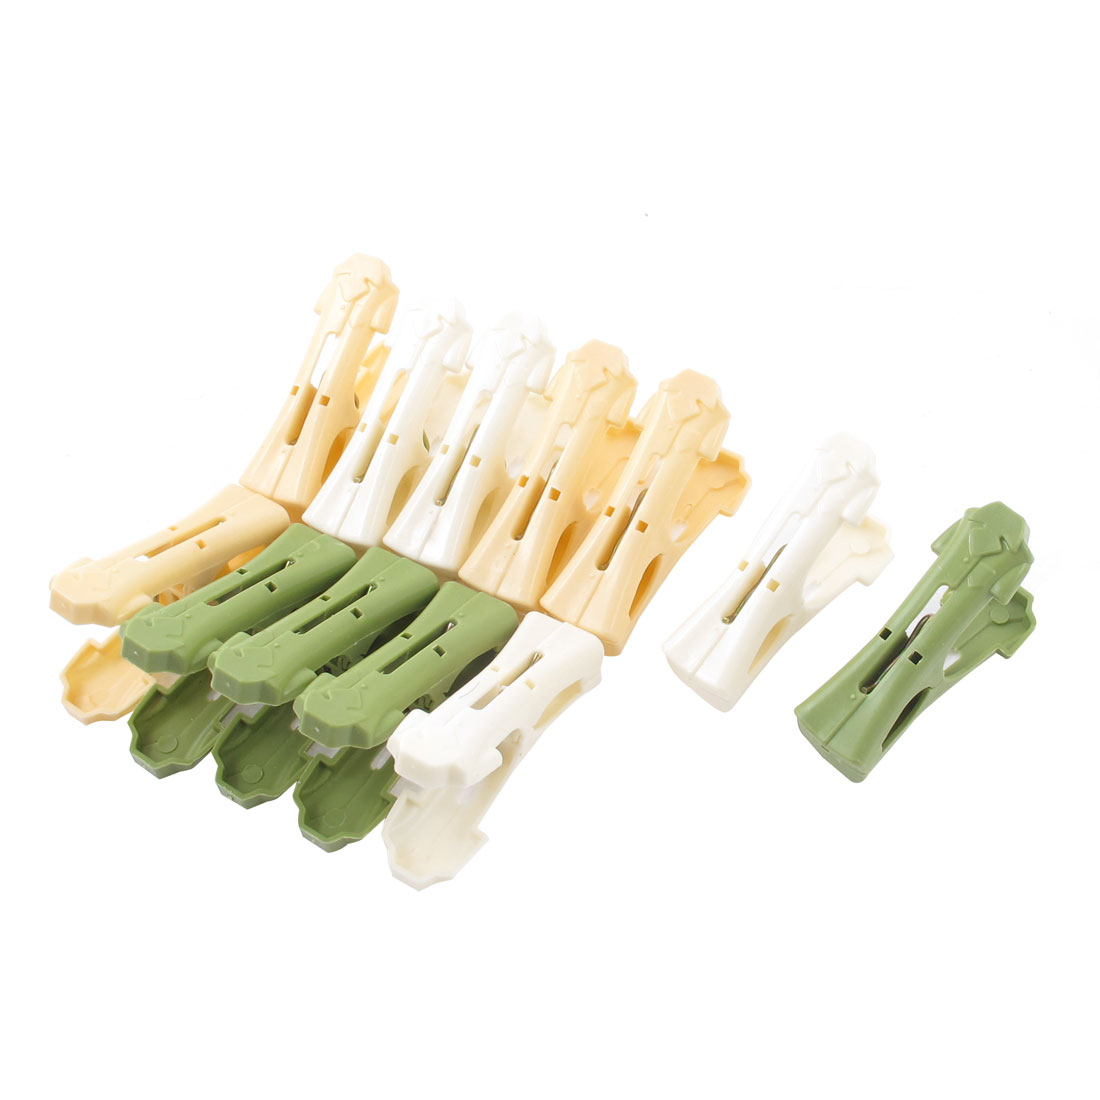 House Spring Loaded Towl Socks Hanging Clothes Clip Pegs 12 Pcs Assorted Color